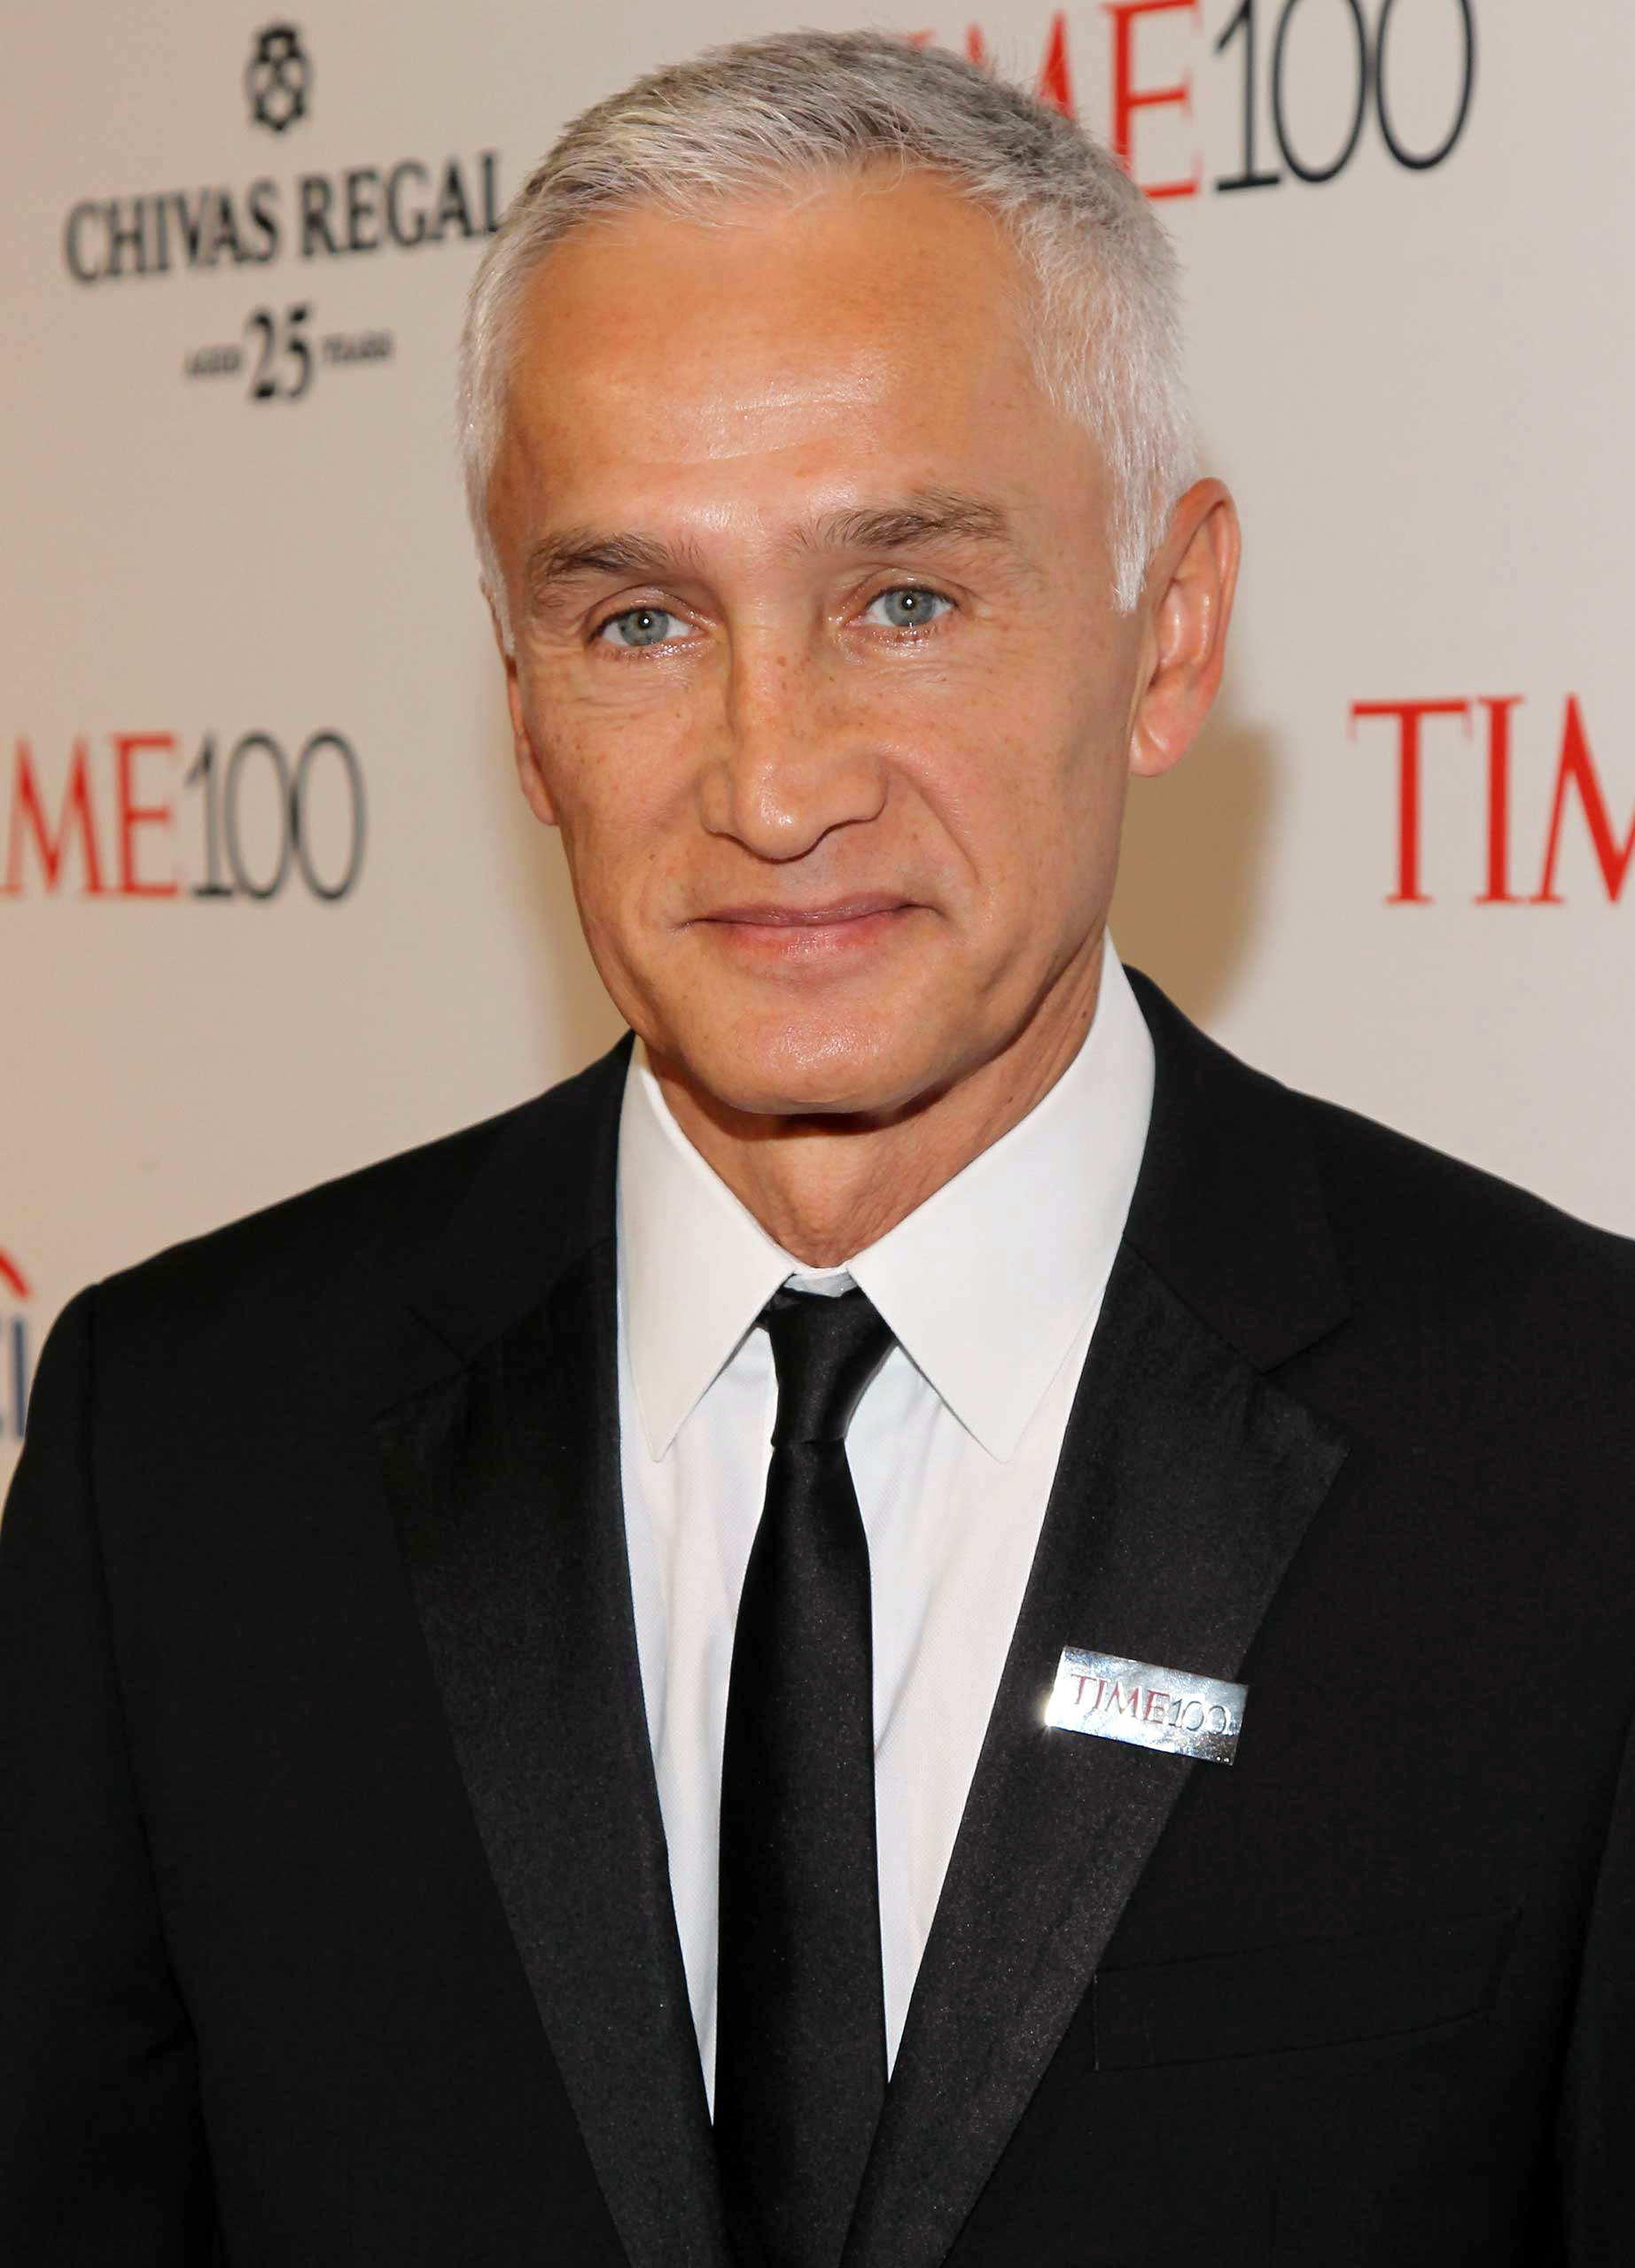 Jorge Ramos attends the TIME 100 Gala at Jazz at Lincoln Center in New York City on Apr. 21, 2015.